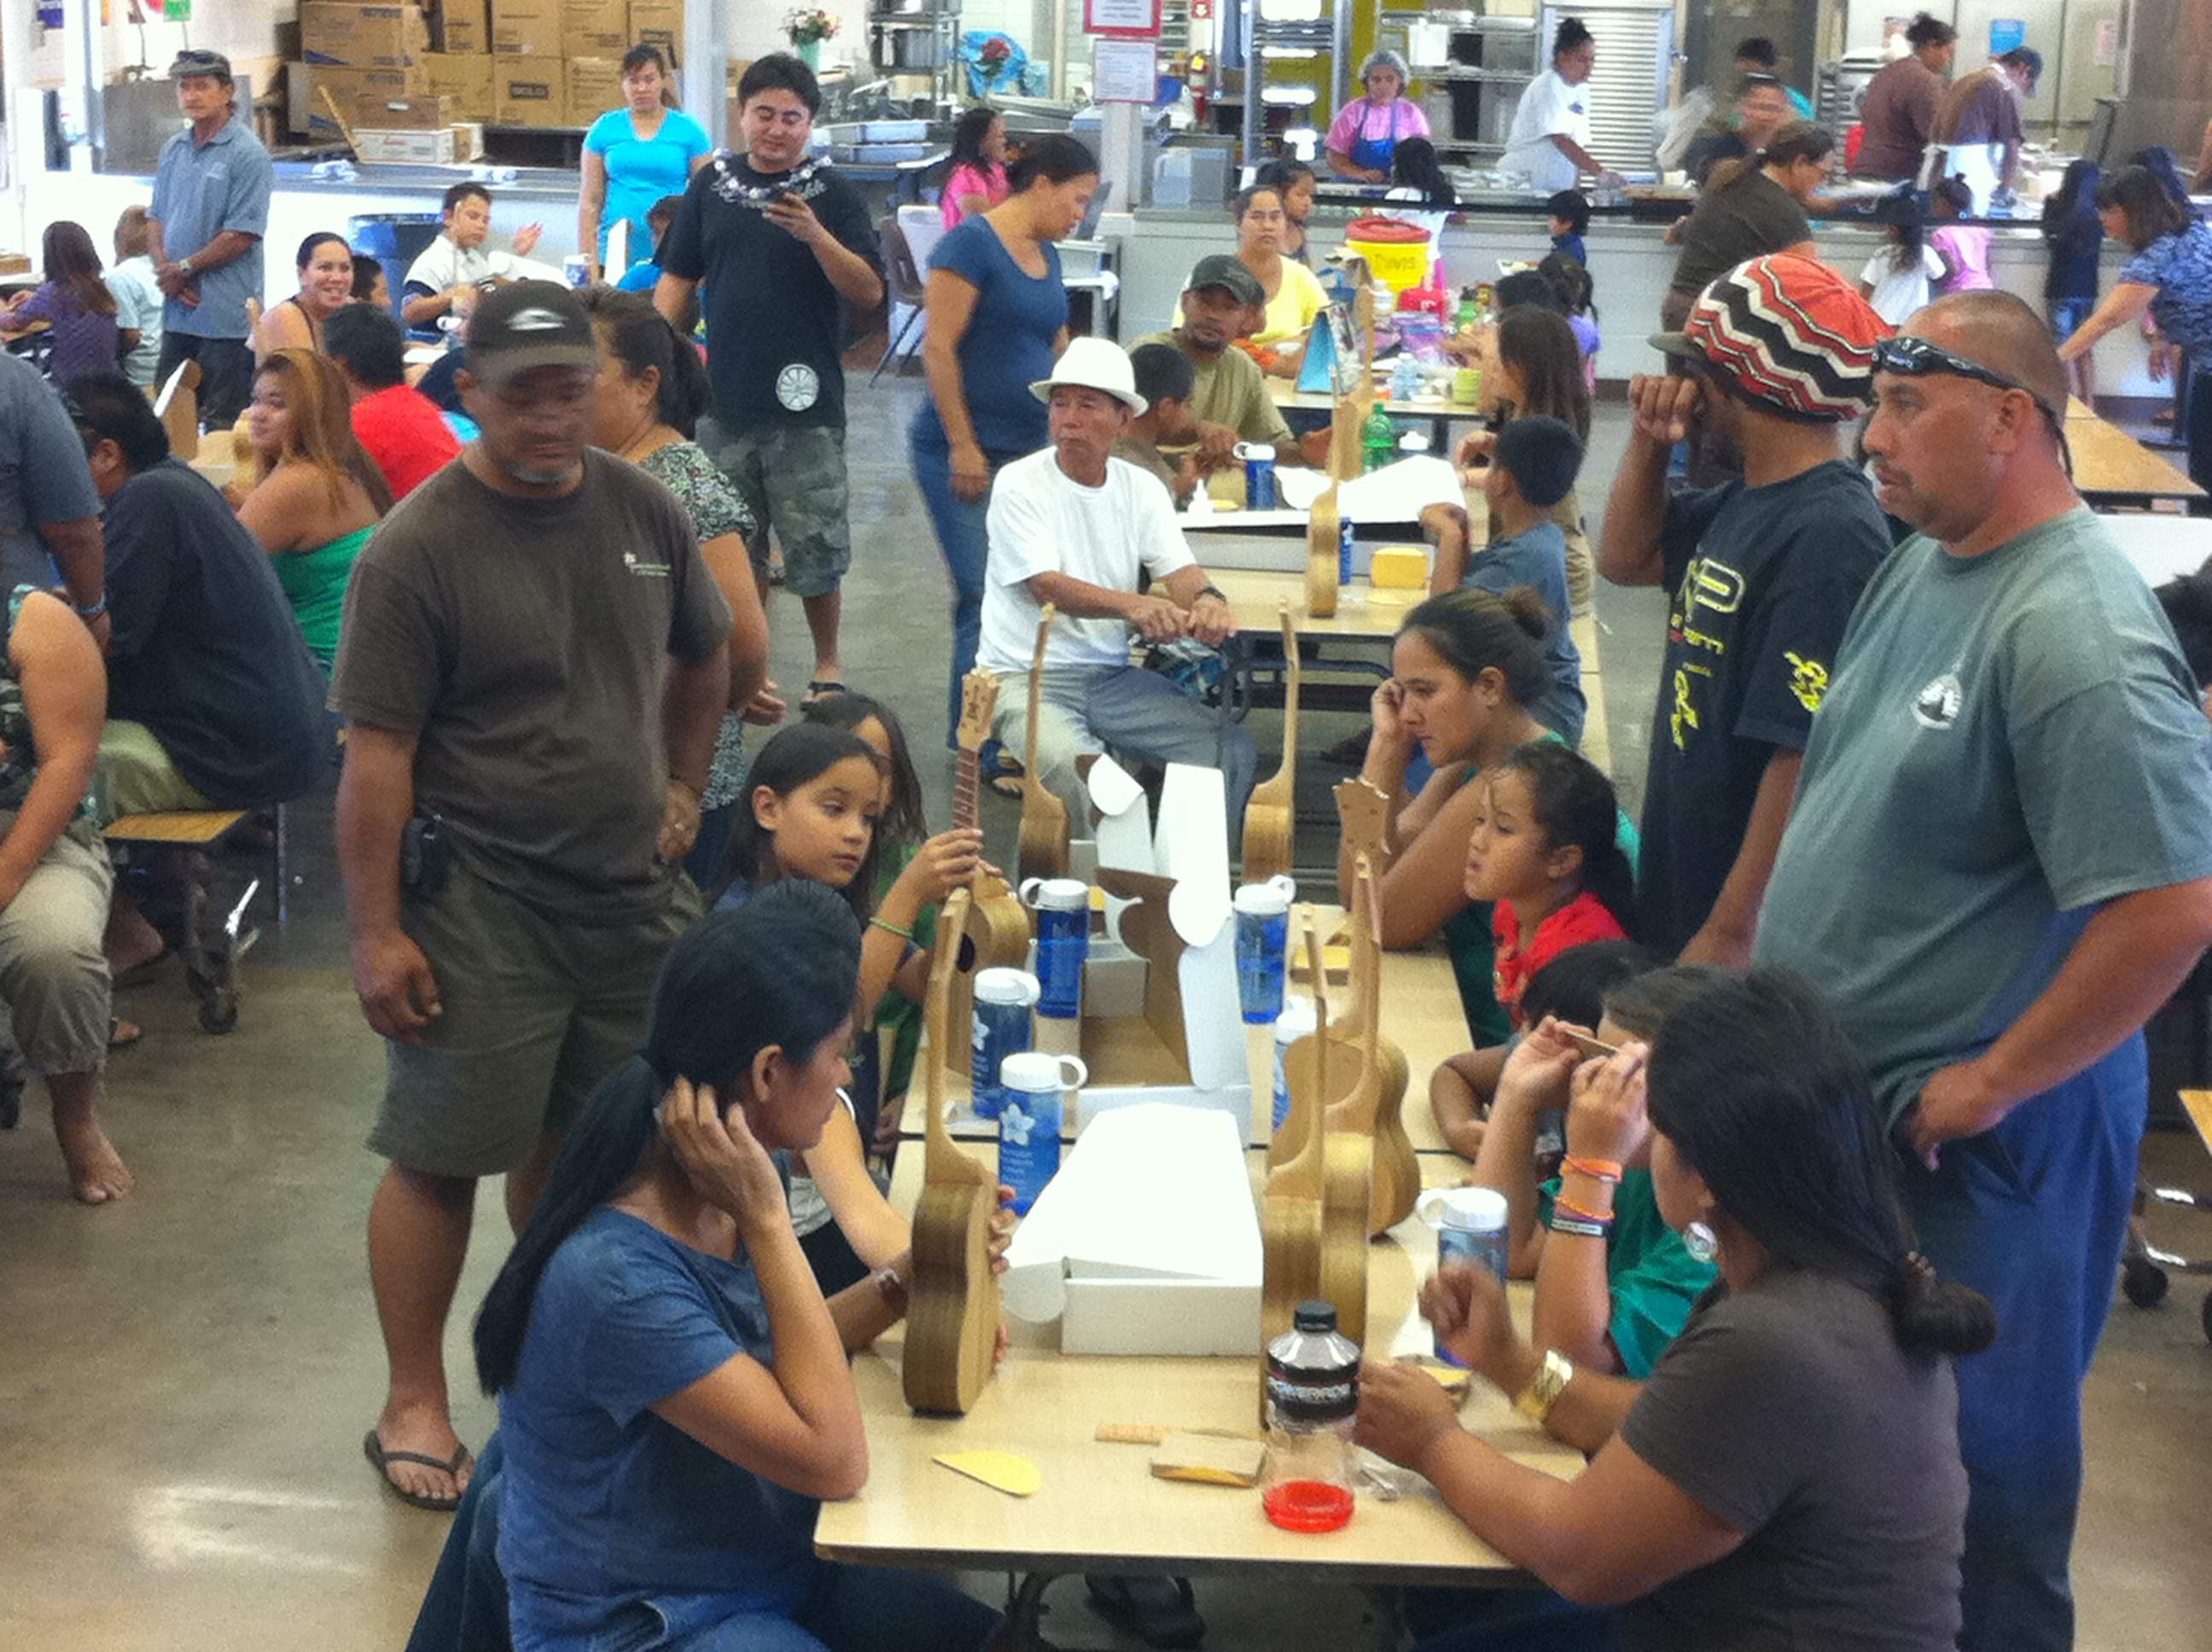 Seven years and 300 ukuleles later, KoAloha continues to support local youth